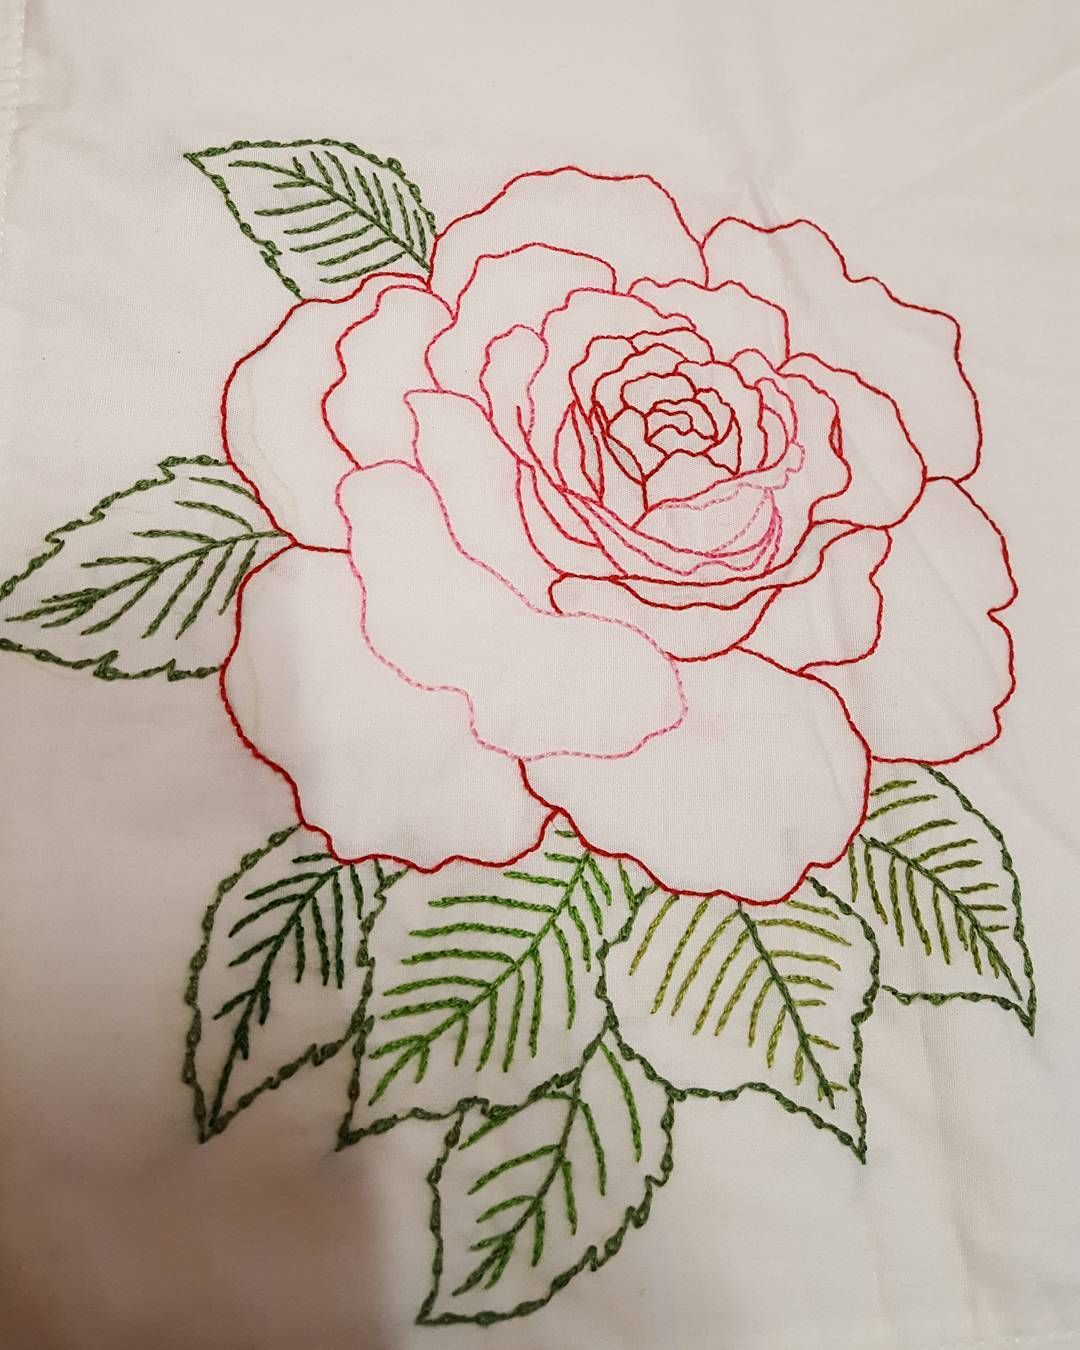 Embroidery Embroider Handembroidery Embroideyart Flower Floal Bordado Handmade Needlew Rose Embroidery Pattern Embroidery Flowers Embroidery Tutorials